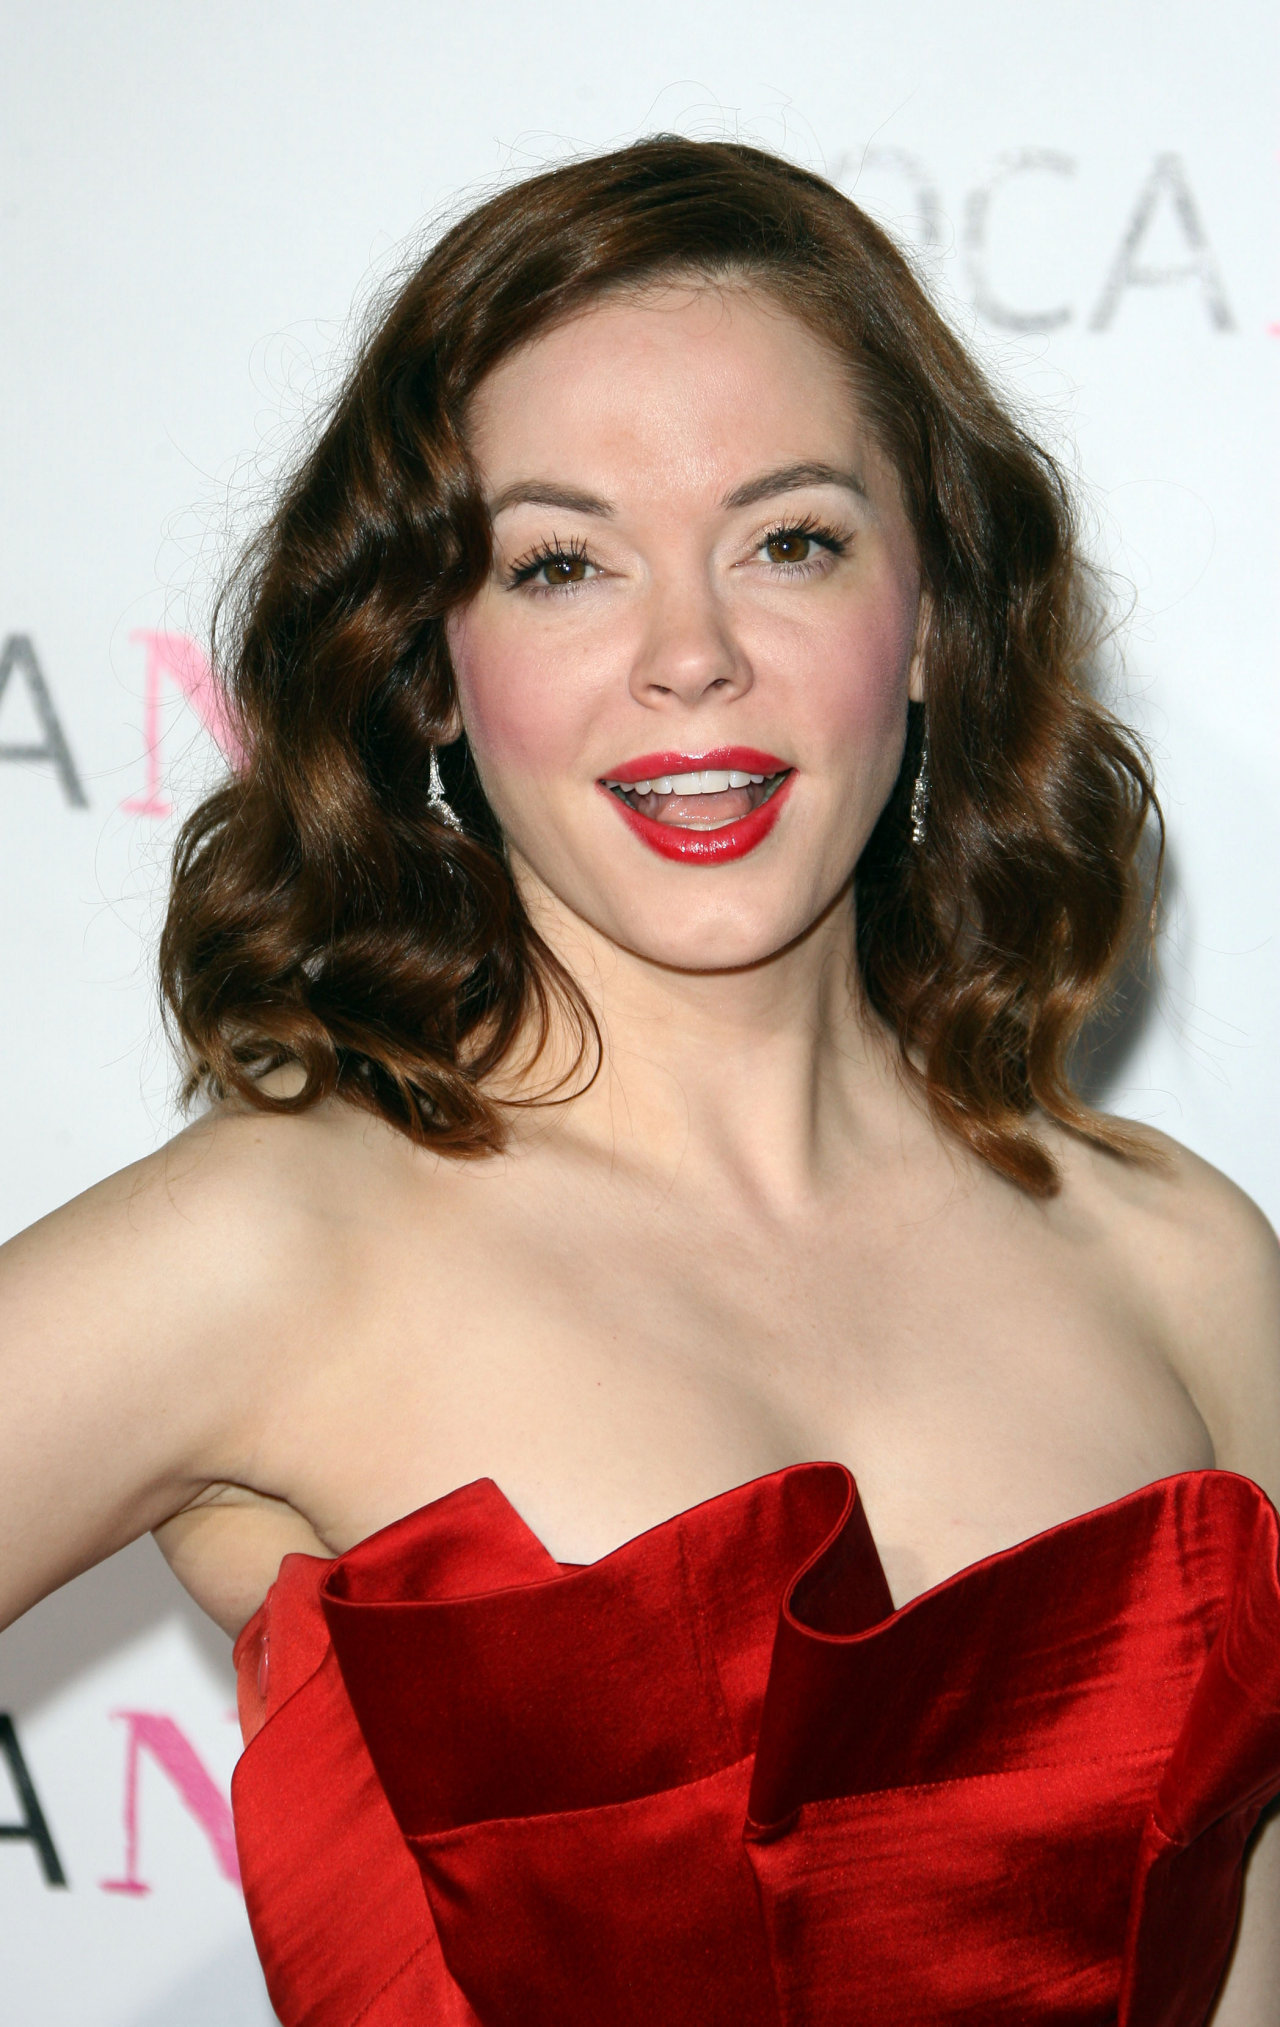 rose mcgowan pictures - photo #19